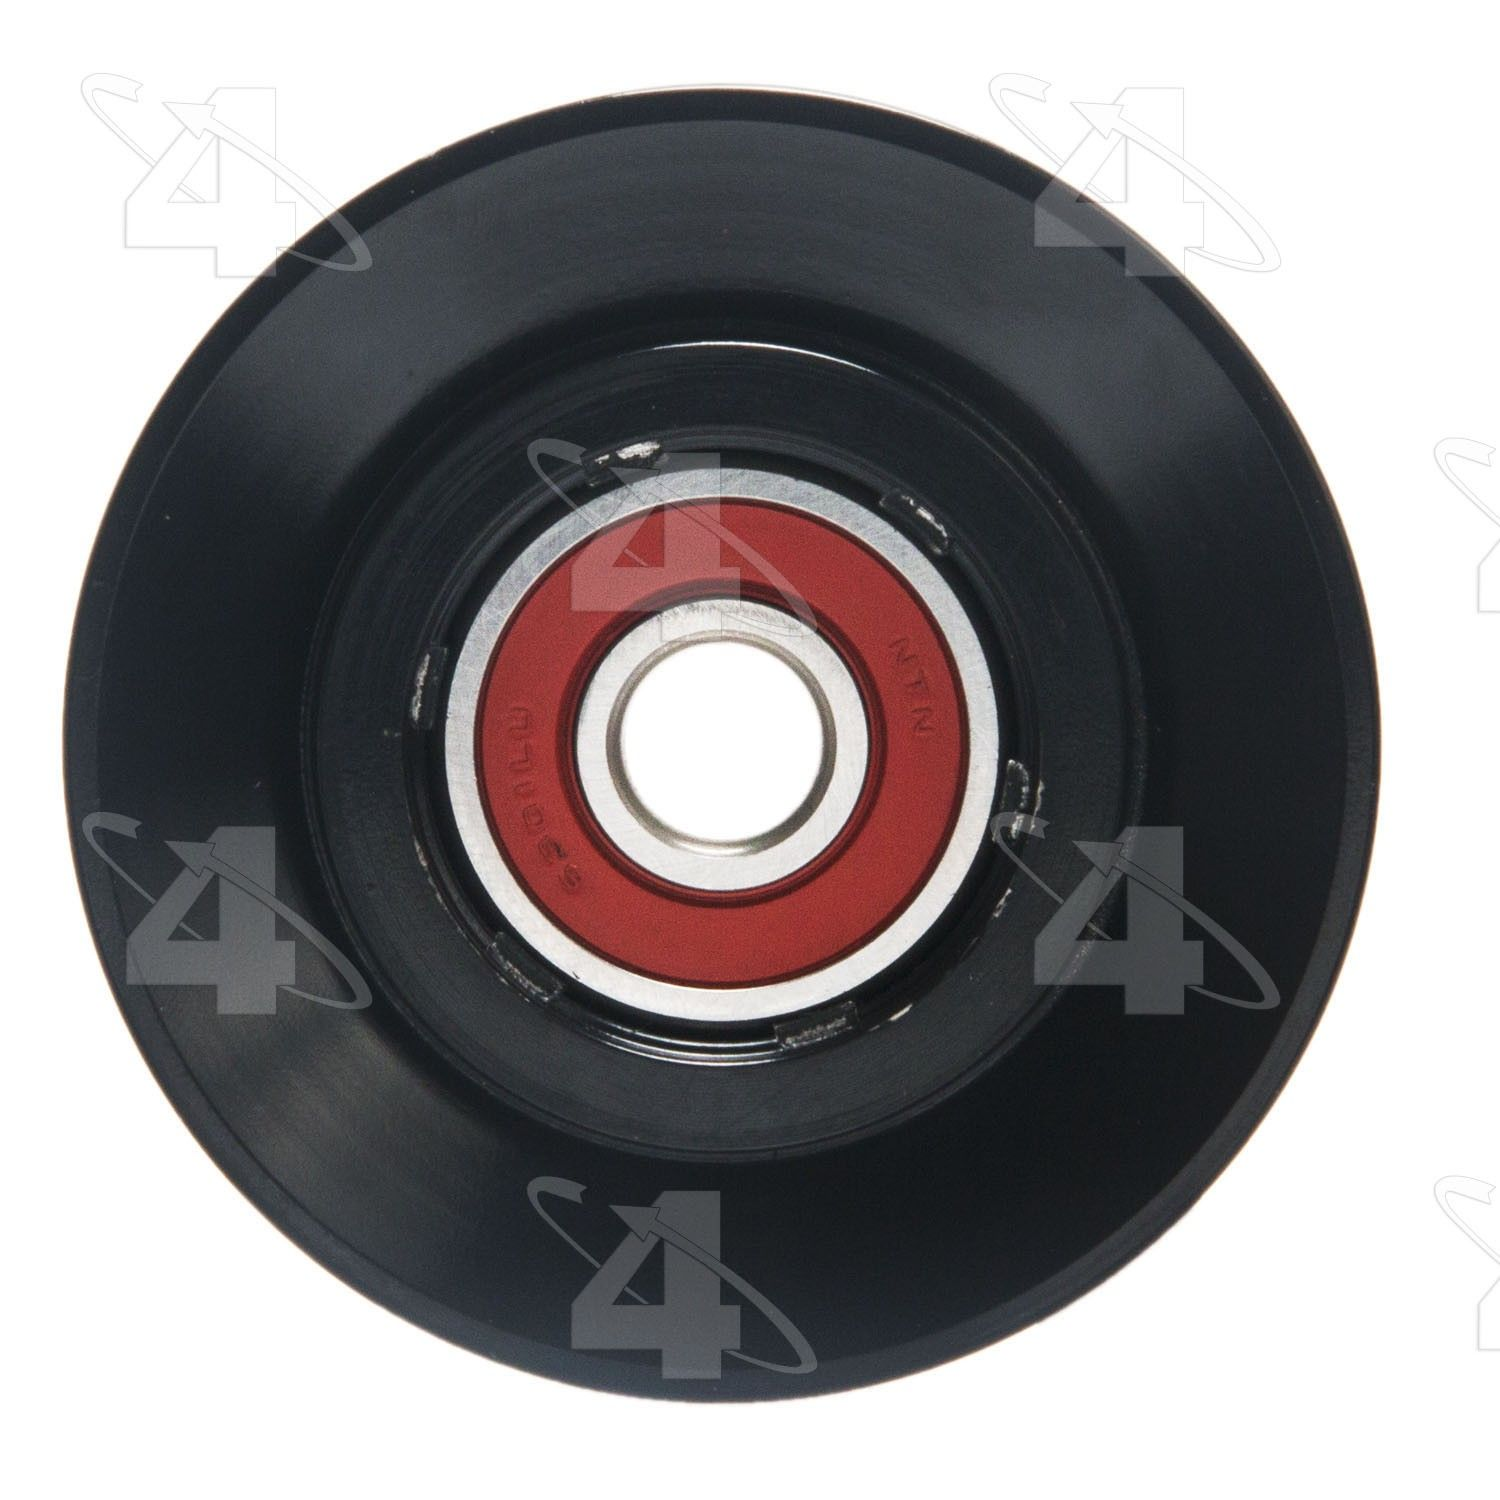 Nissan Frontier Drive Belt Idler Pulley Replacement Dayco Four Diagram 1999 Power Steering 4 Cyl 24l Seasons 45957